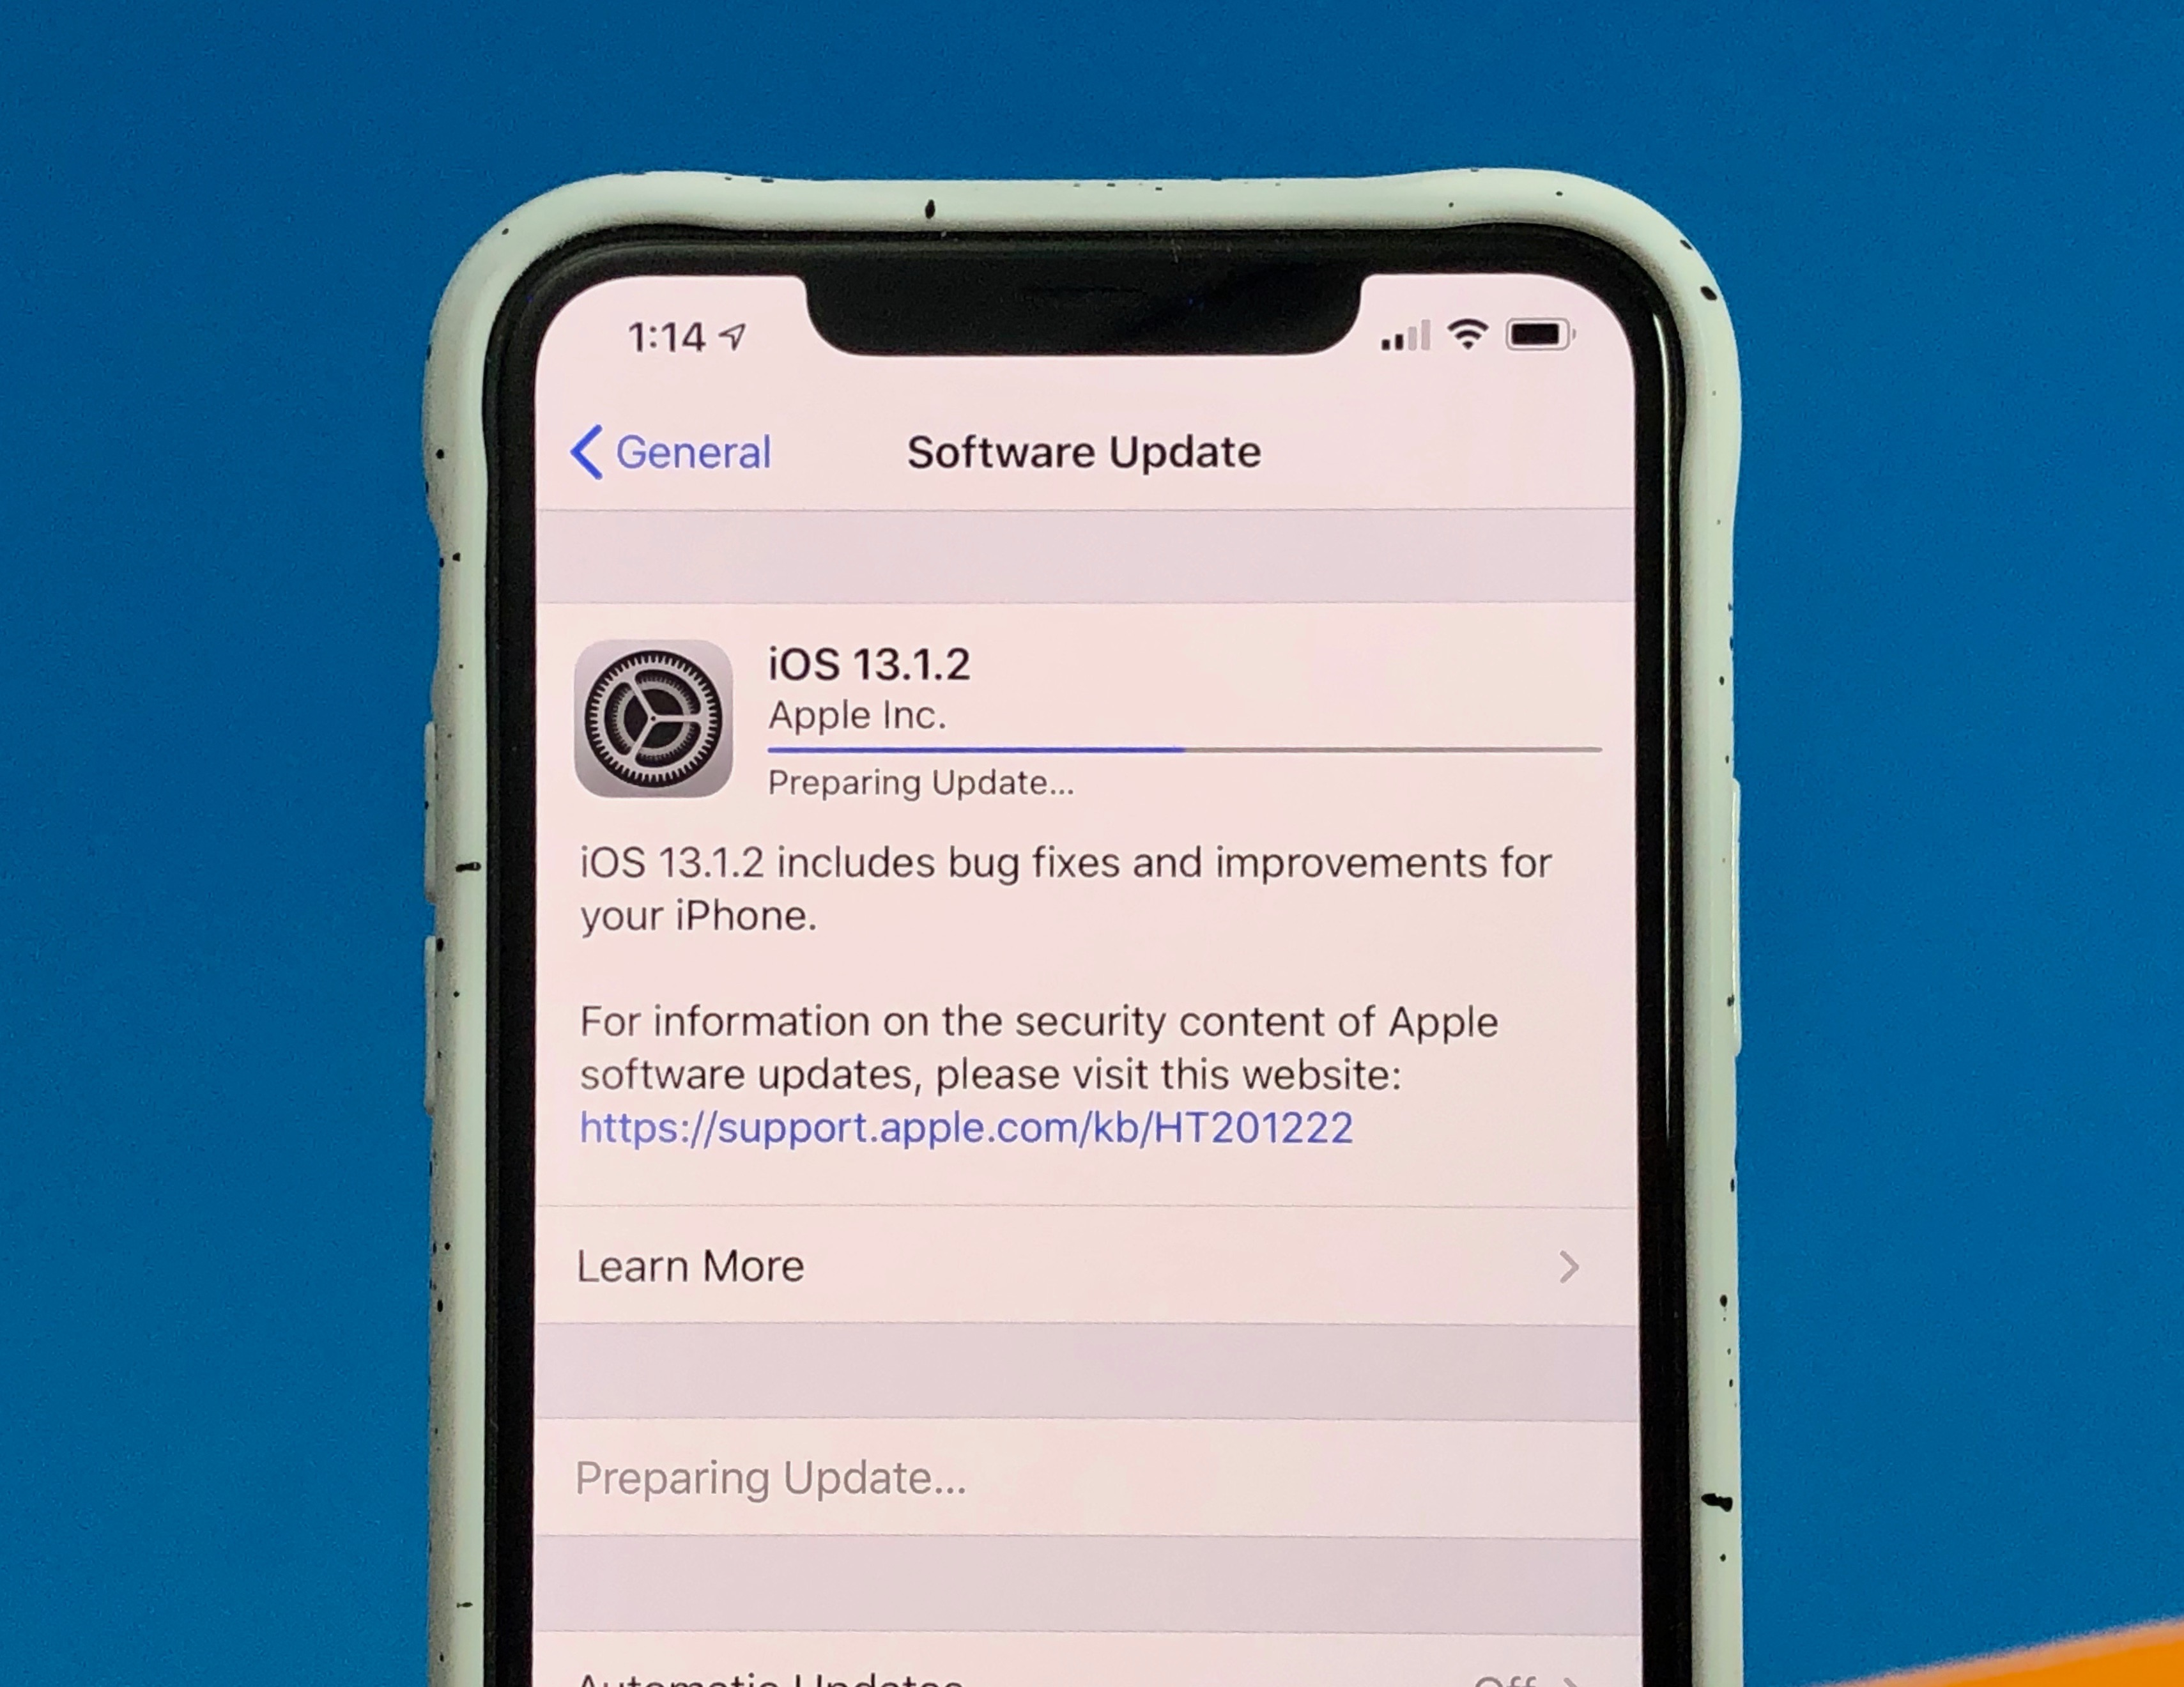 5 Things to Know About the iOS 13.1.2 Update